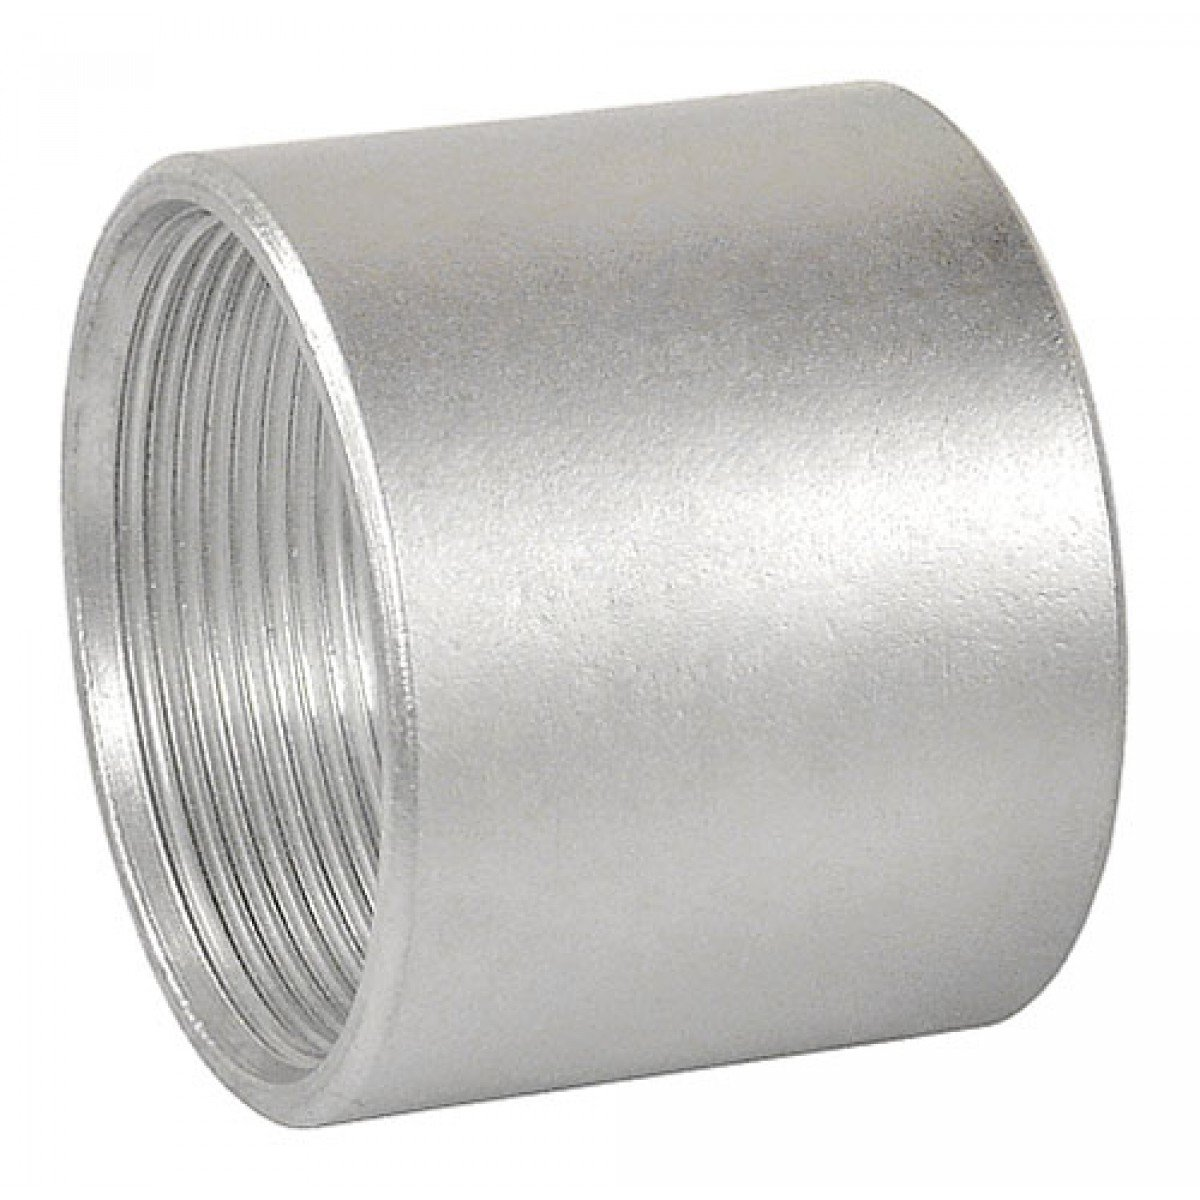 1 Pc, 6 In. Galvanized Rigid Threaded Coupling to Bond Threaded Conduits to Electrical Junction Boxes Or Enclosures